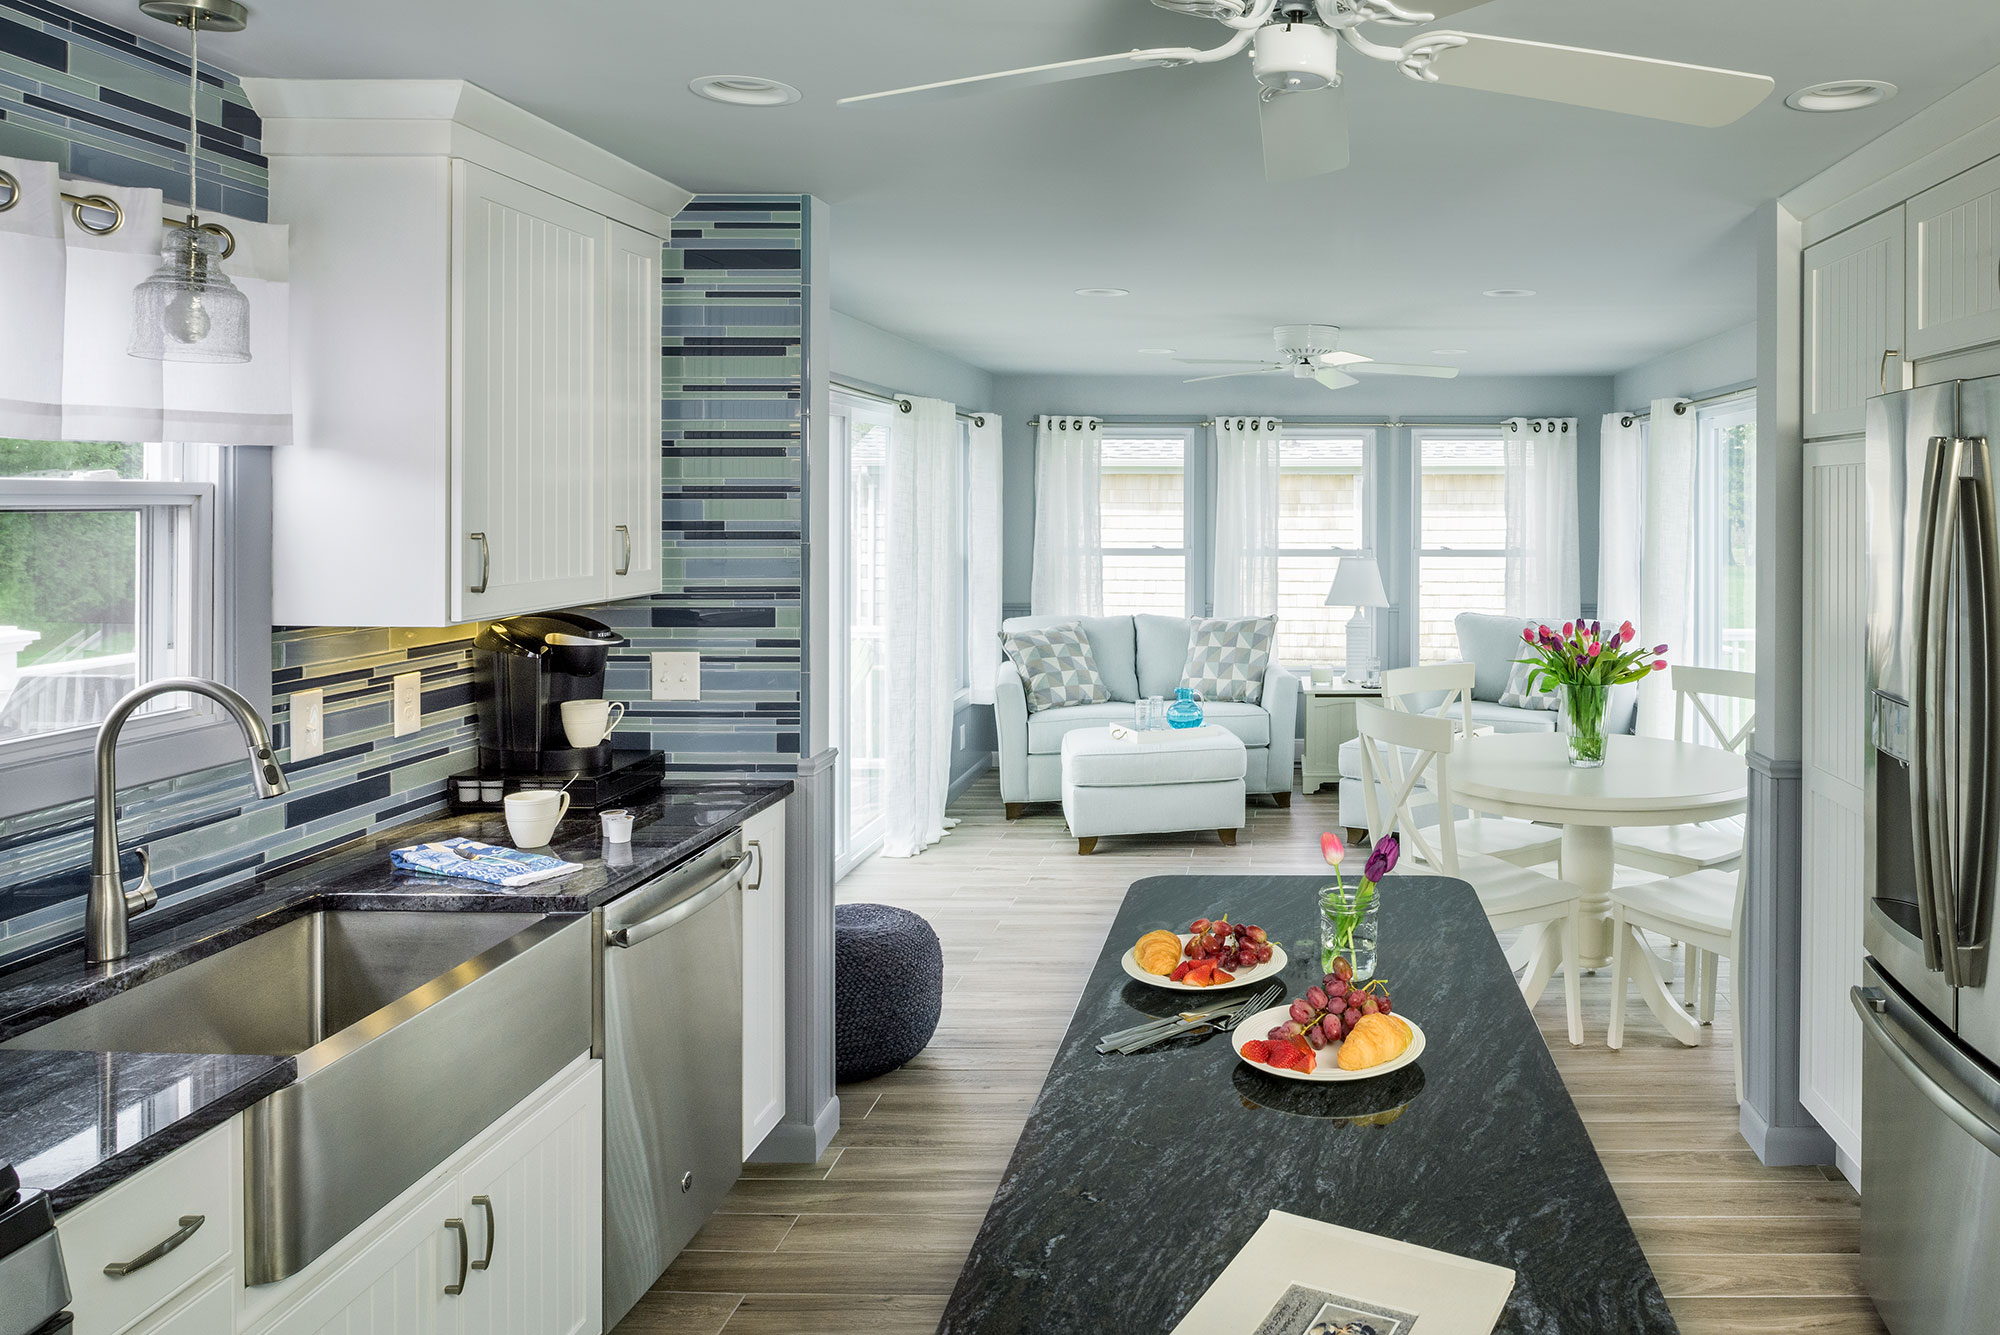 Home Building Designs by Exodus Construction - luxury coastal homes builder South County RI